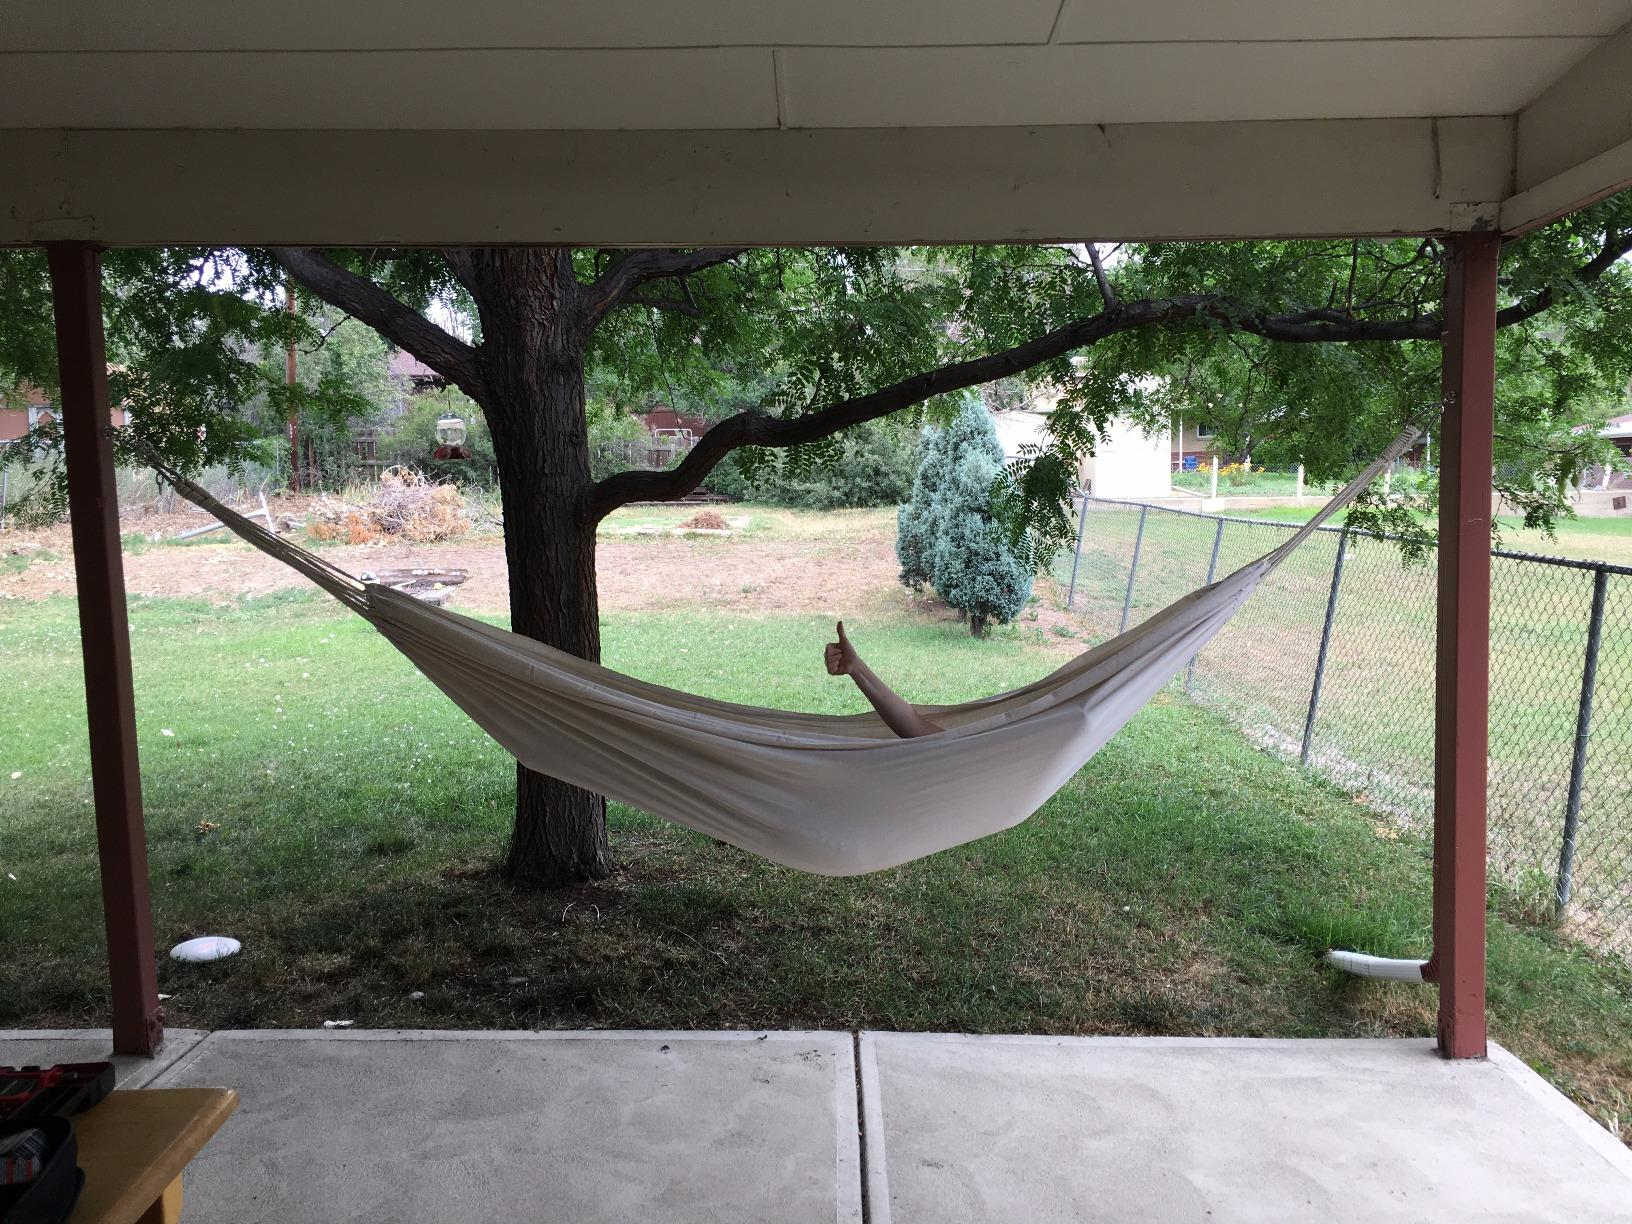 This hammock is a cocoon of coziness. My only complaint is that the seller emails a pdf of the instructions post delivery